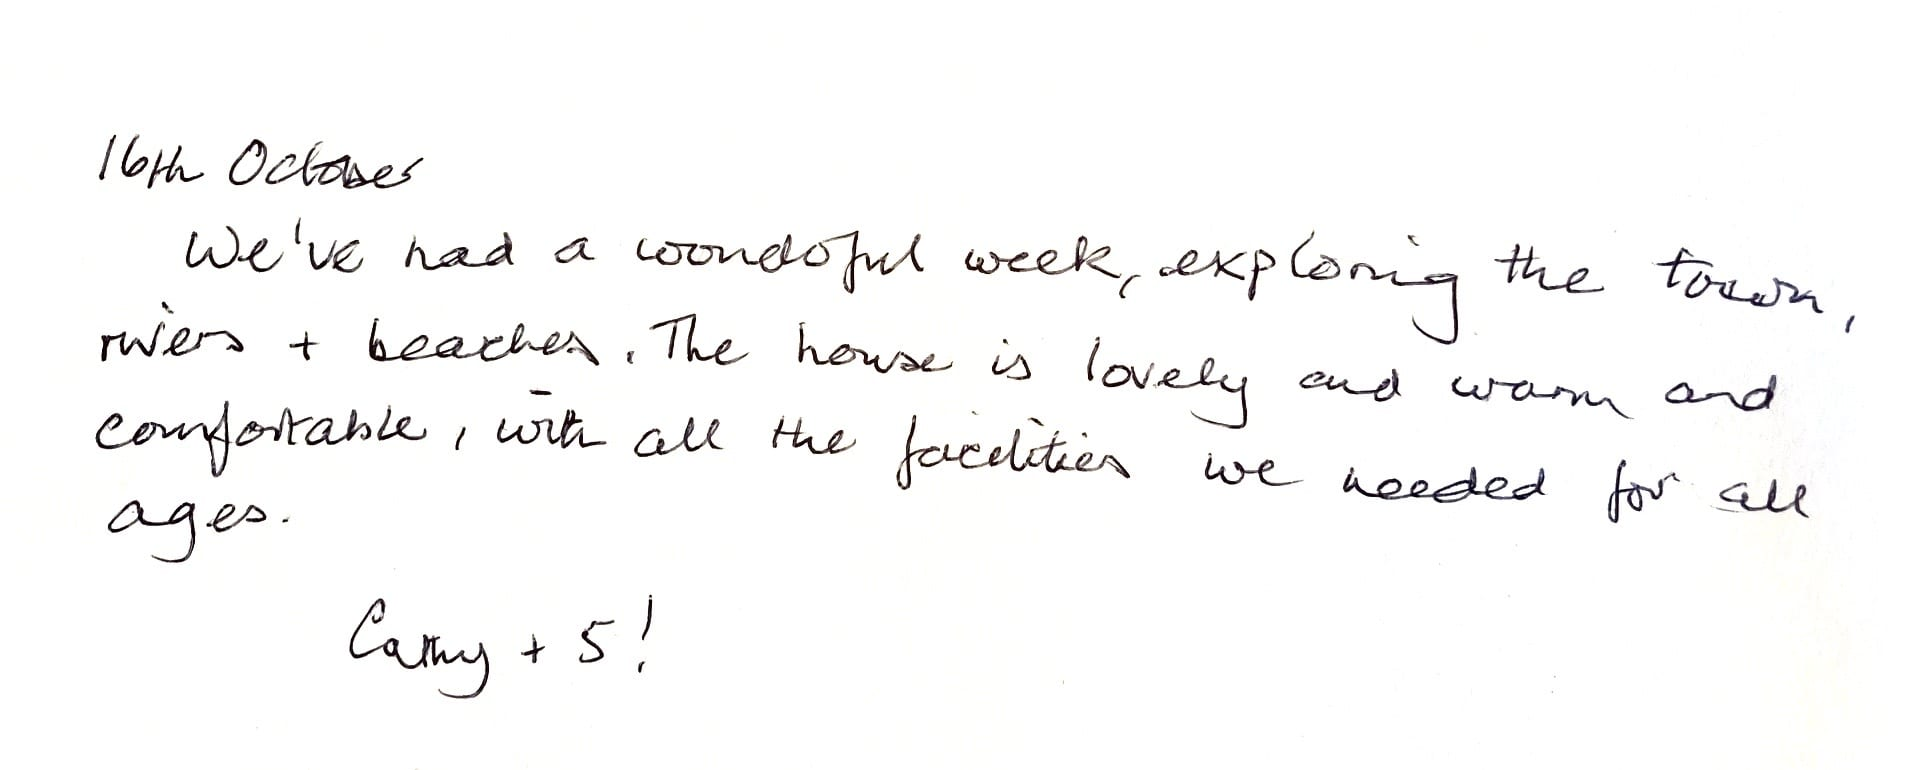 Wonderful guest review for Christchurch property